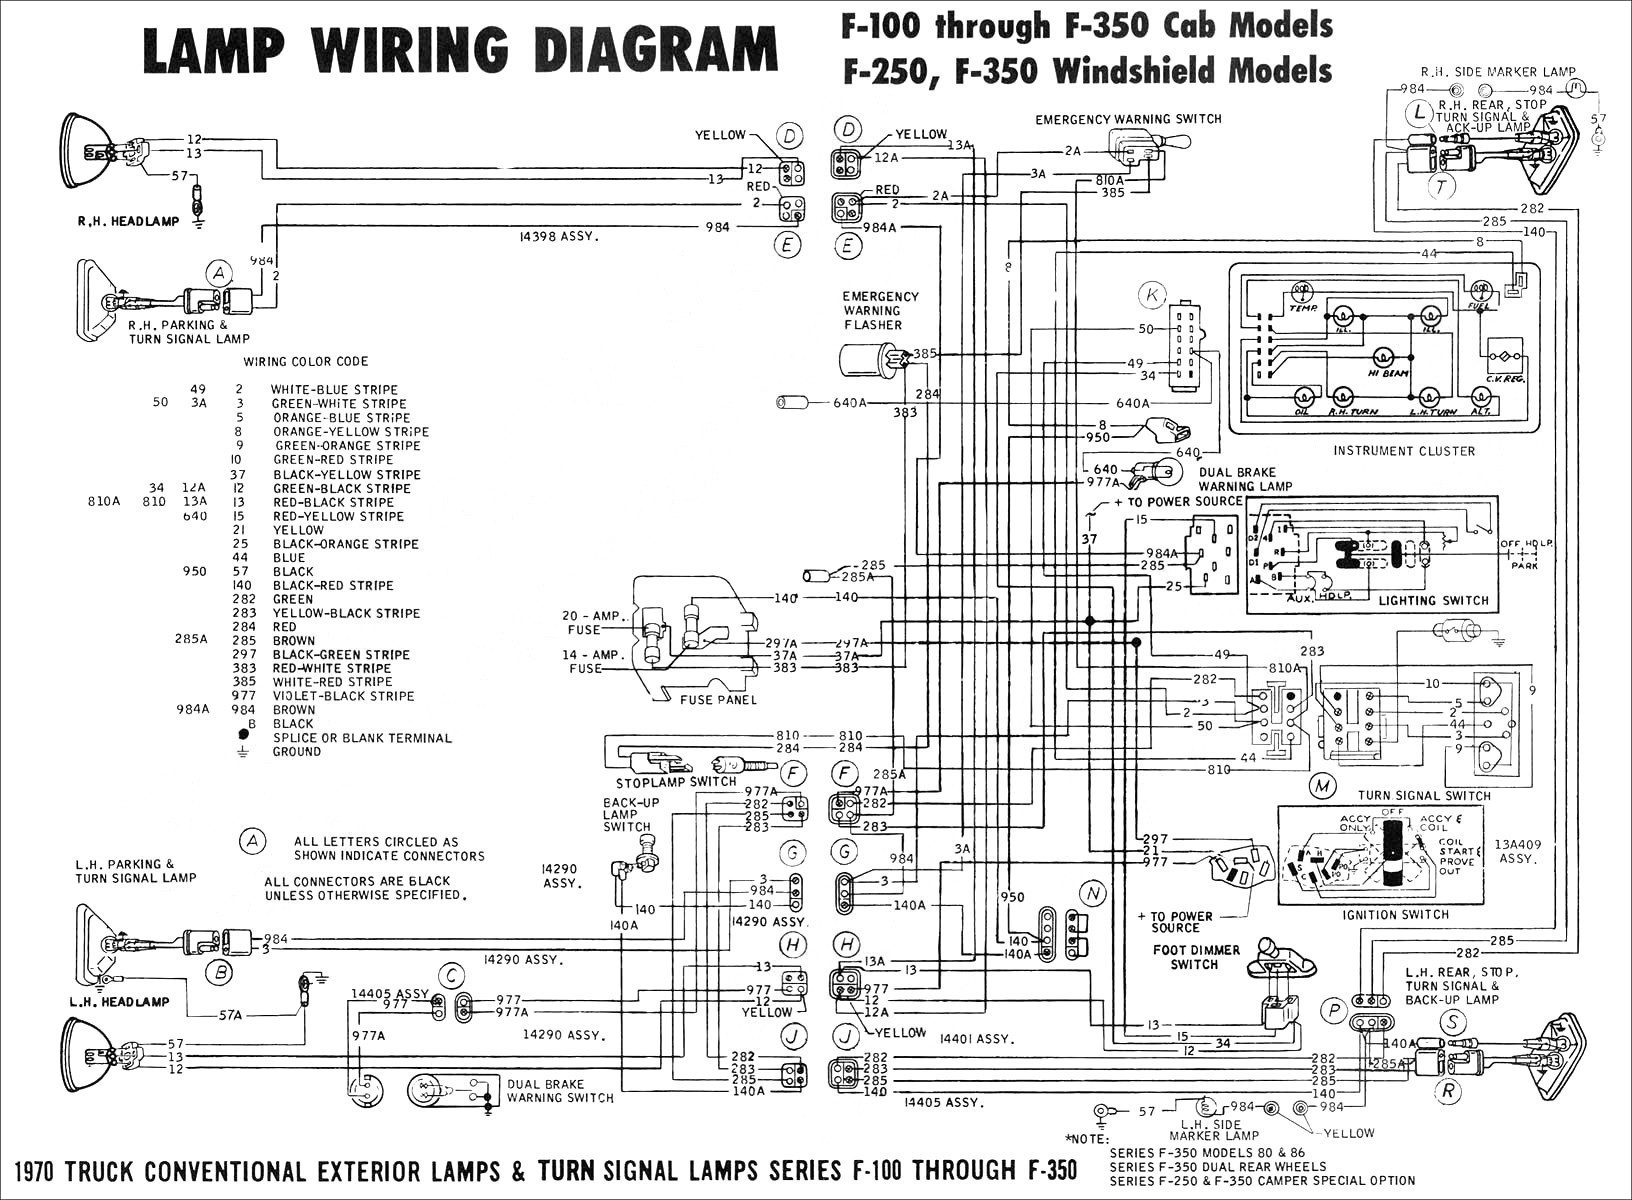 Power Steering System Diagram 61da 1996 Dodge Dakota Brake Wiring Diagram Of Power Steering System Diagram